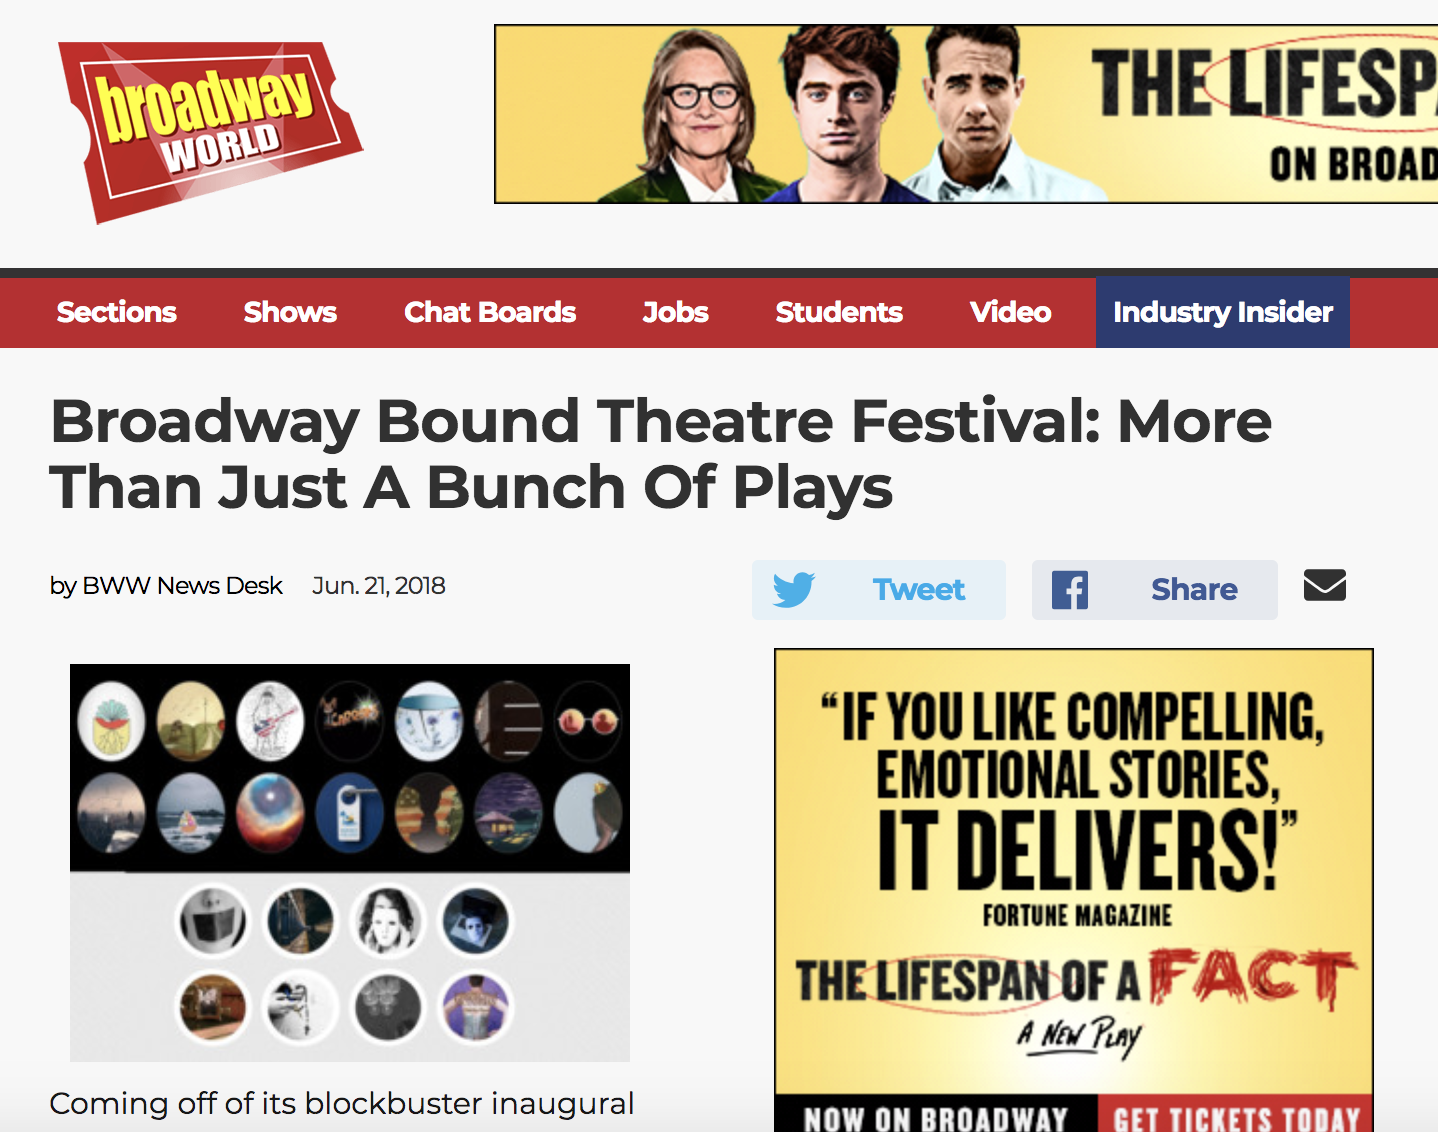 https://www.broadwayworld.com/article/Broadway-Bound-Theatre-Festival-More-Than-Just-A-Bunch-Of-Plays-20180621